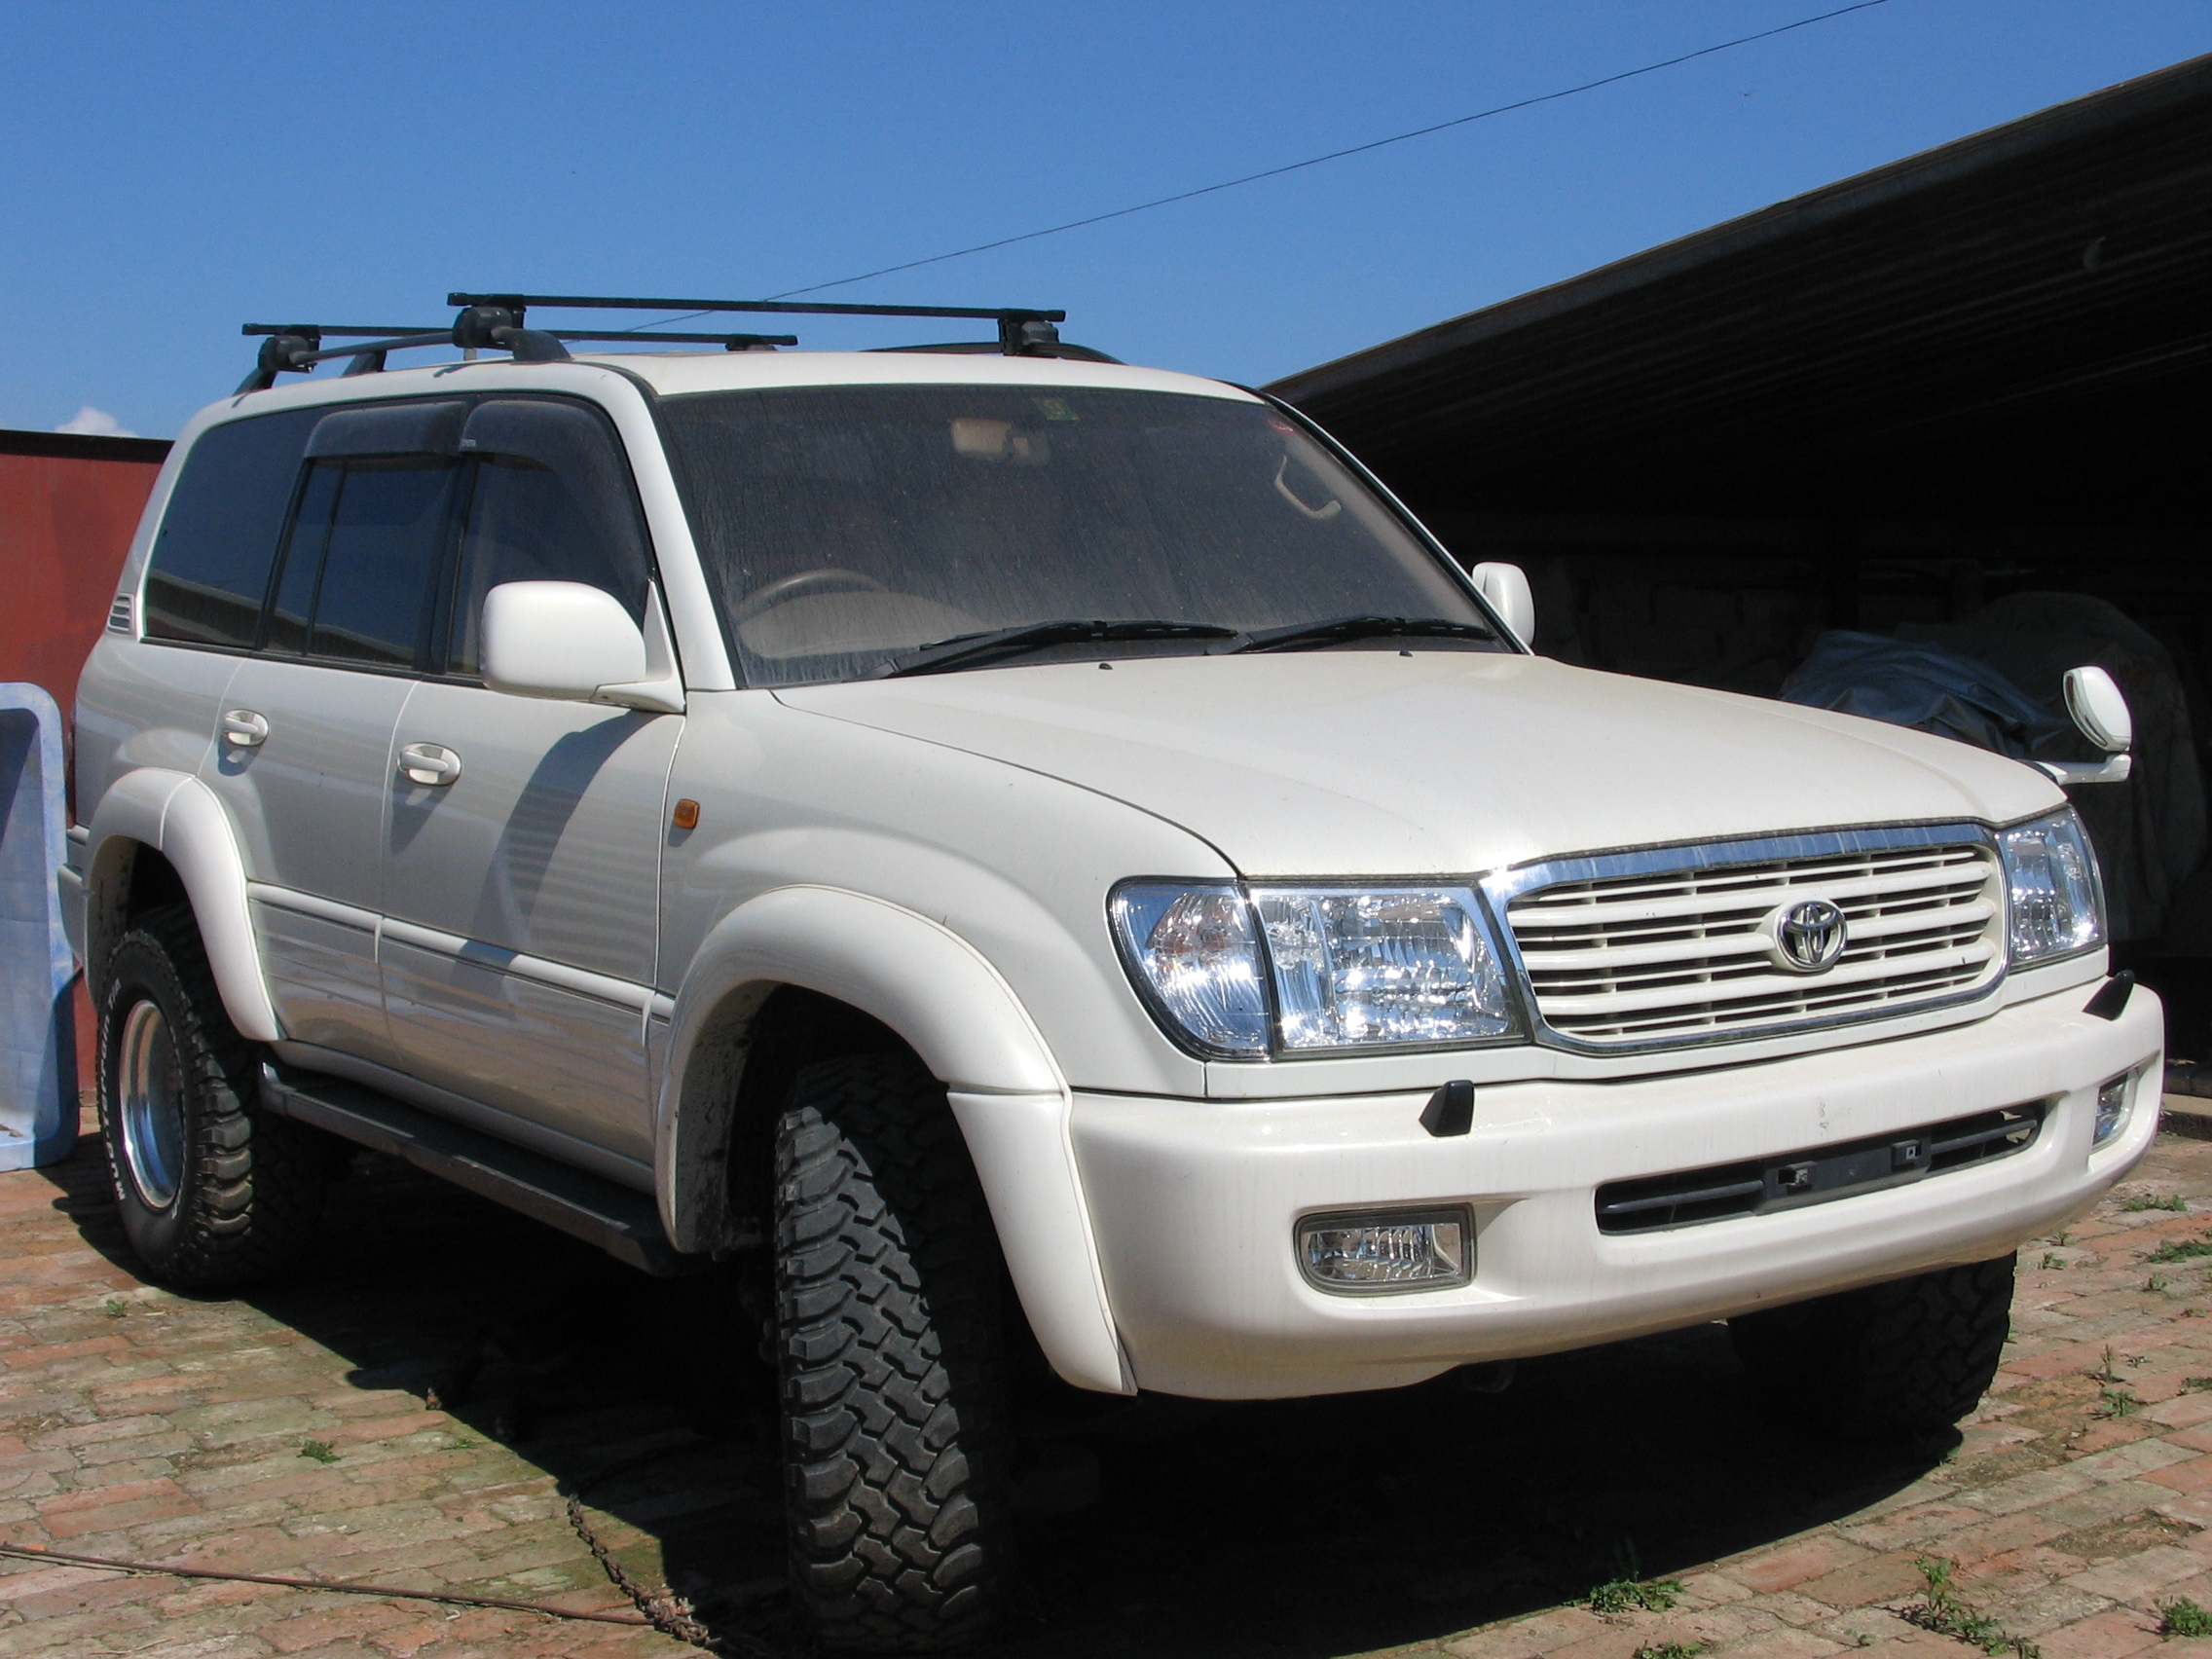 1999 Toyota LAND Cruiser For Sale 4200cc Diesel Automatic For Sale